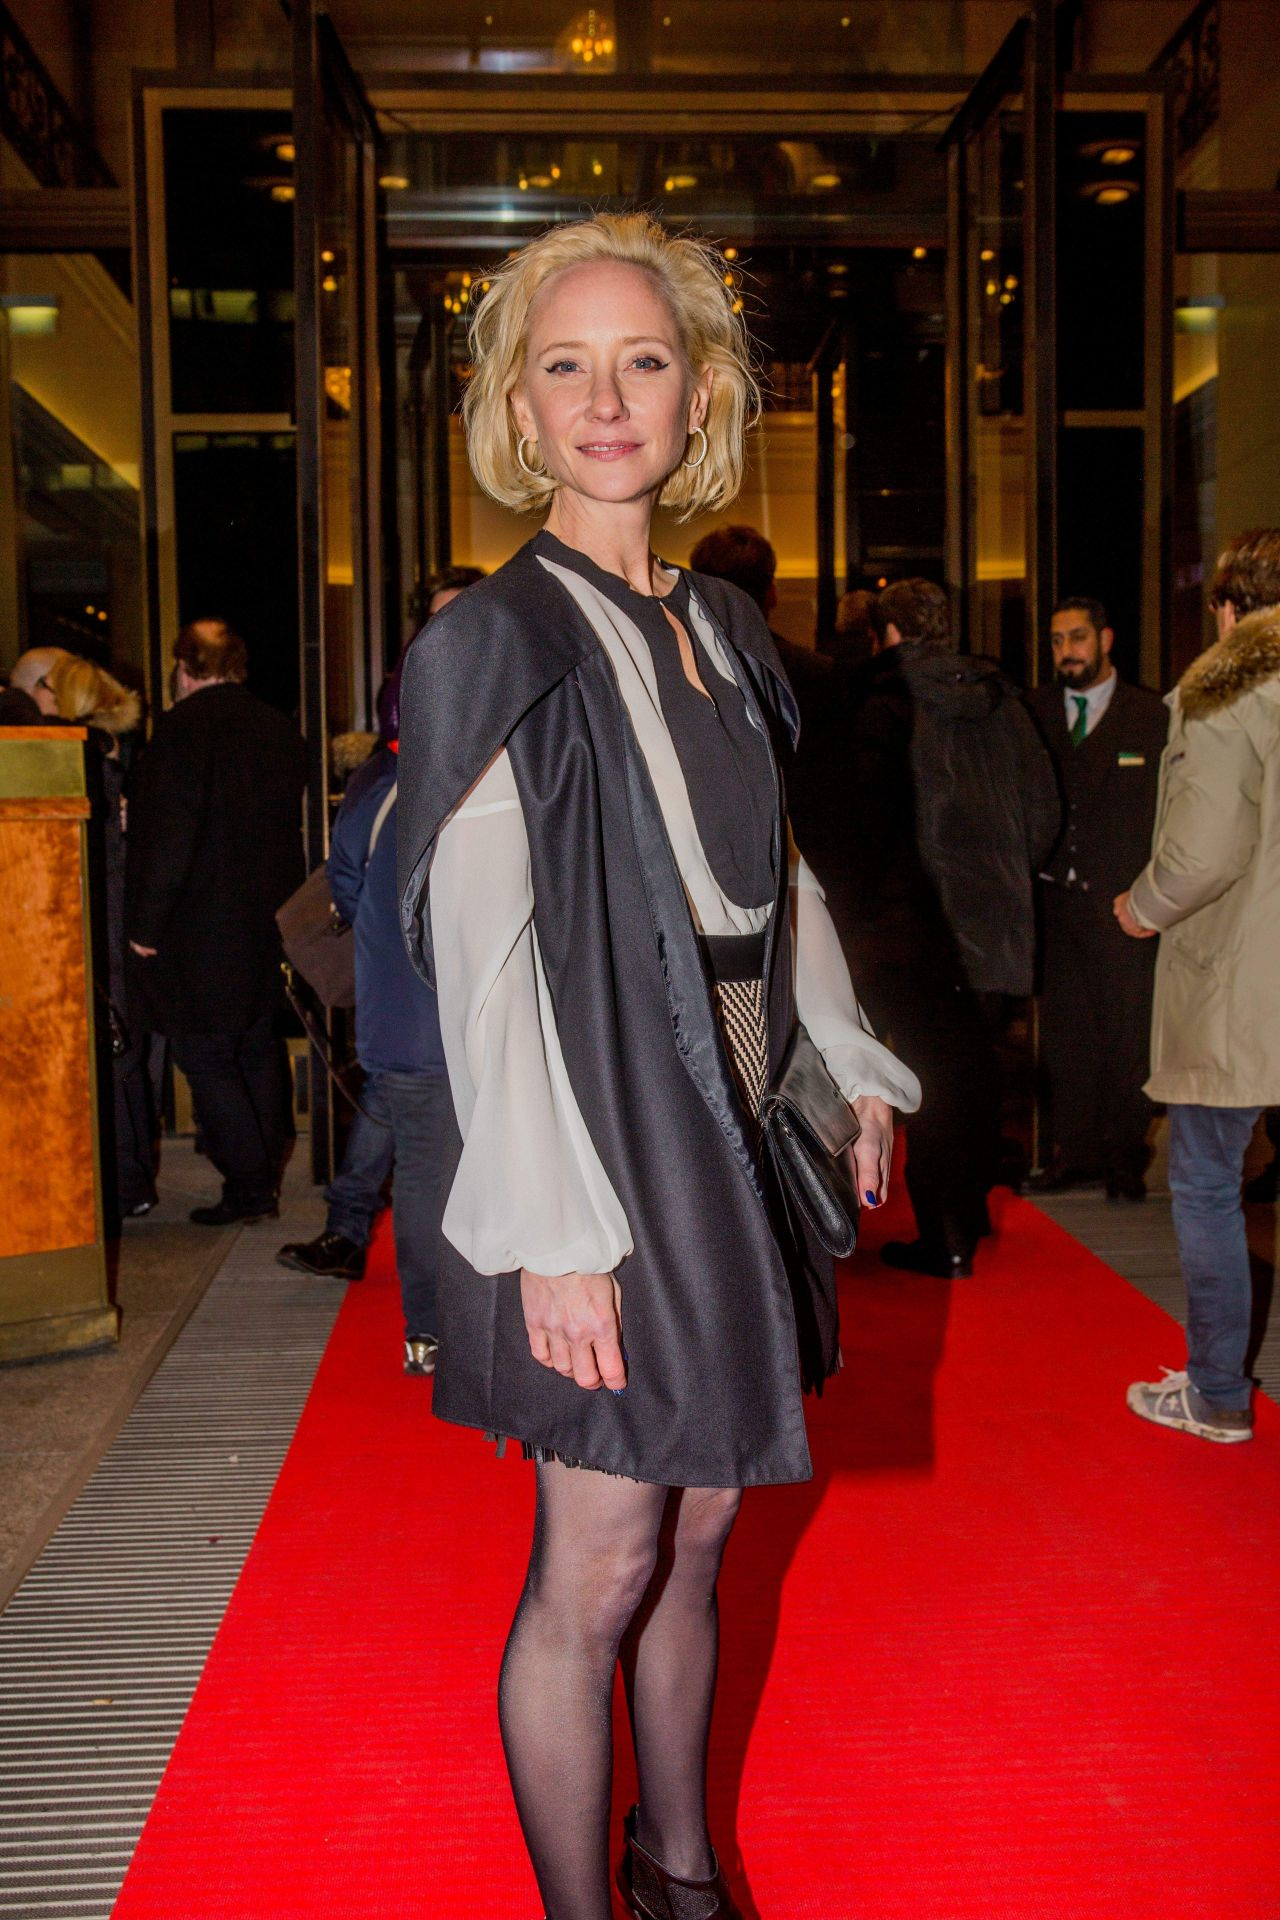 http://celebmafia.com/wp-content/uploads/2018/02/anne-heche-medienboard-party-in-berlin-5.jpg